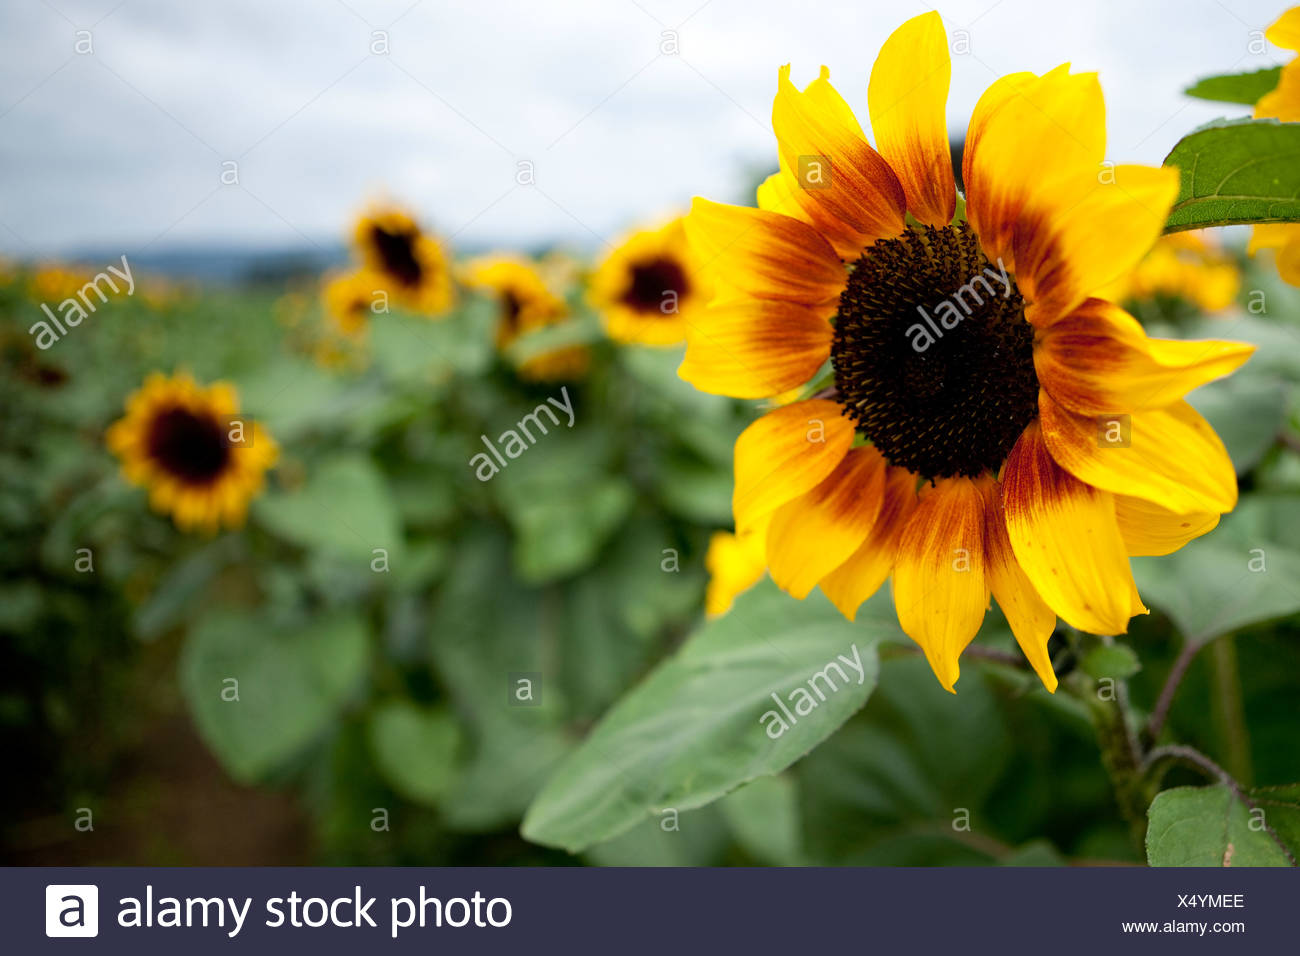 U-pic sunflowers at a local farm. - Stock Image